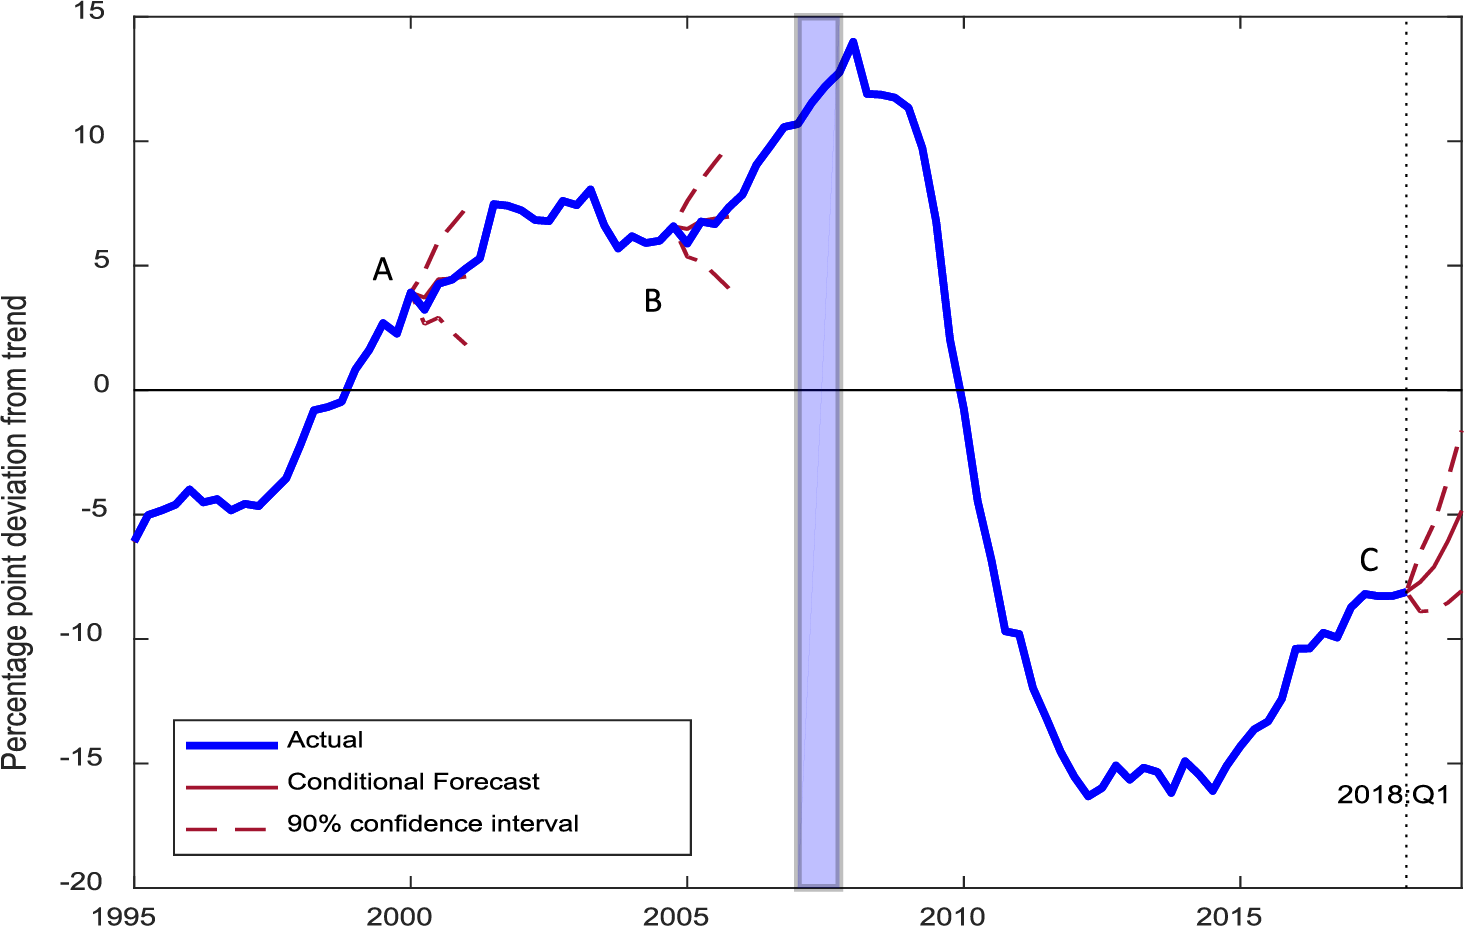 Figure 3. Conditional Forecasts, Forecasts for the Credit-to-GDP Gap (one-sided) Conditional on the Output Gap. See accessible link for data description.